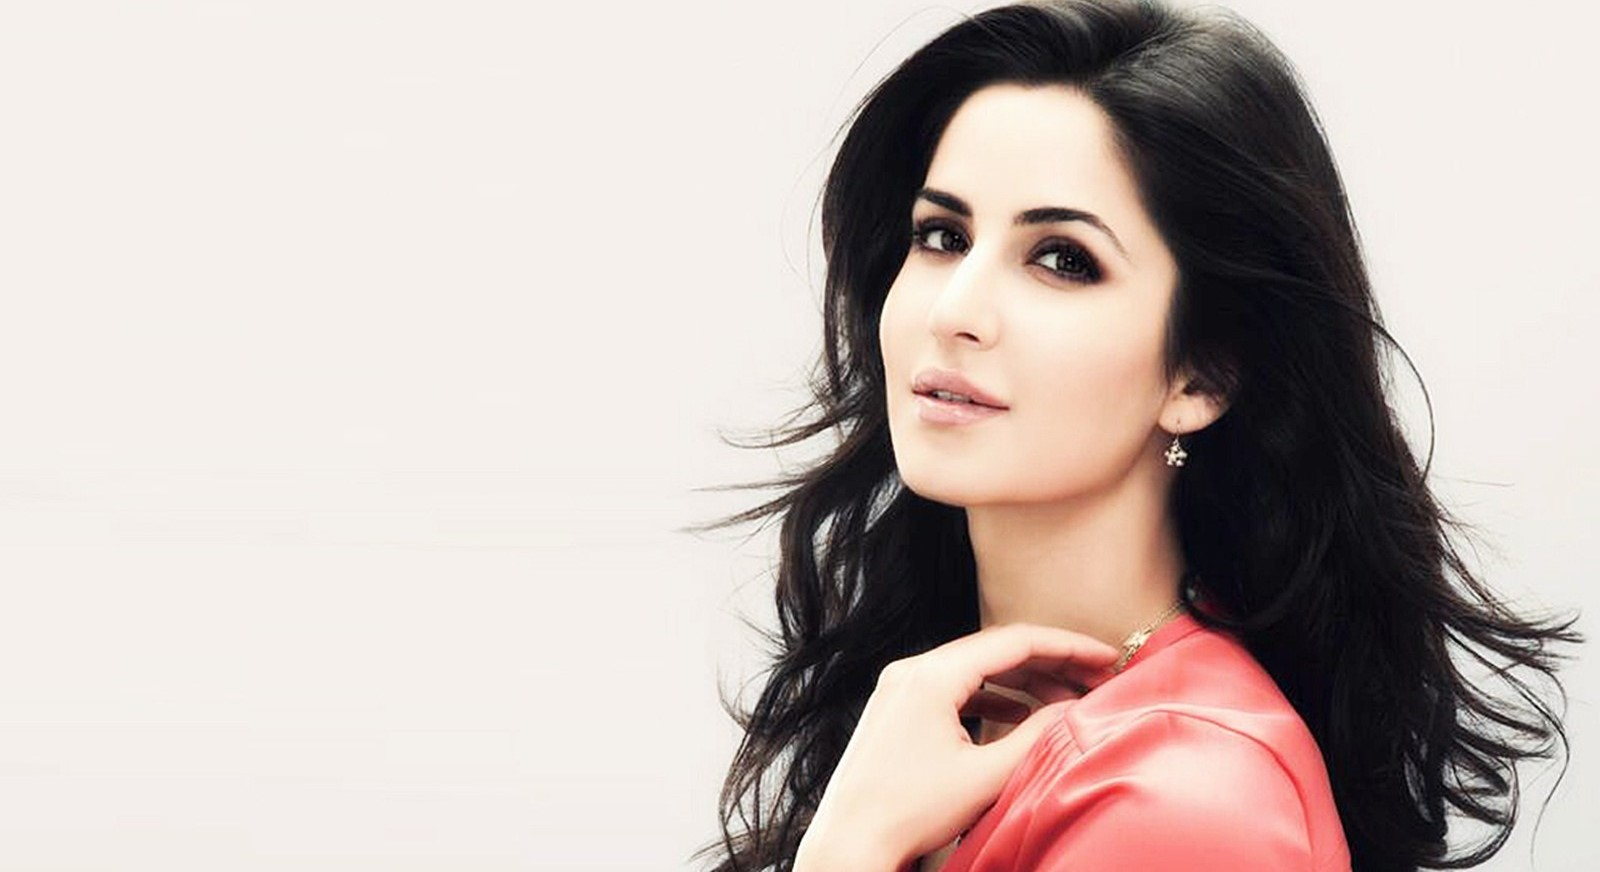 Katrina Kaif Hq Desktop Wallpaper Hd Katrina Kaif 172484